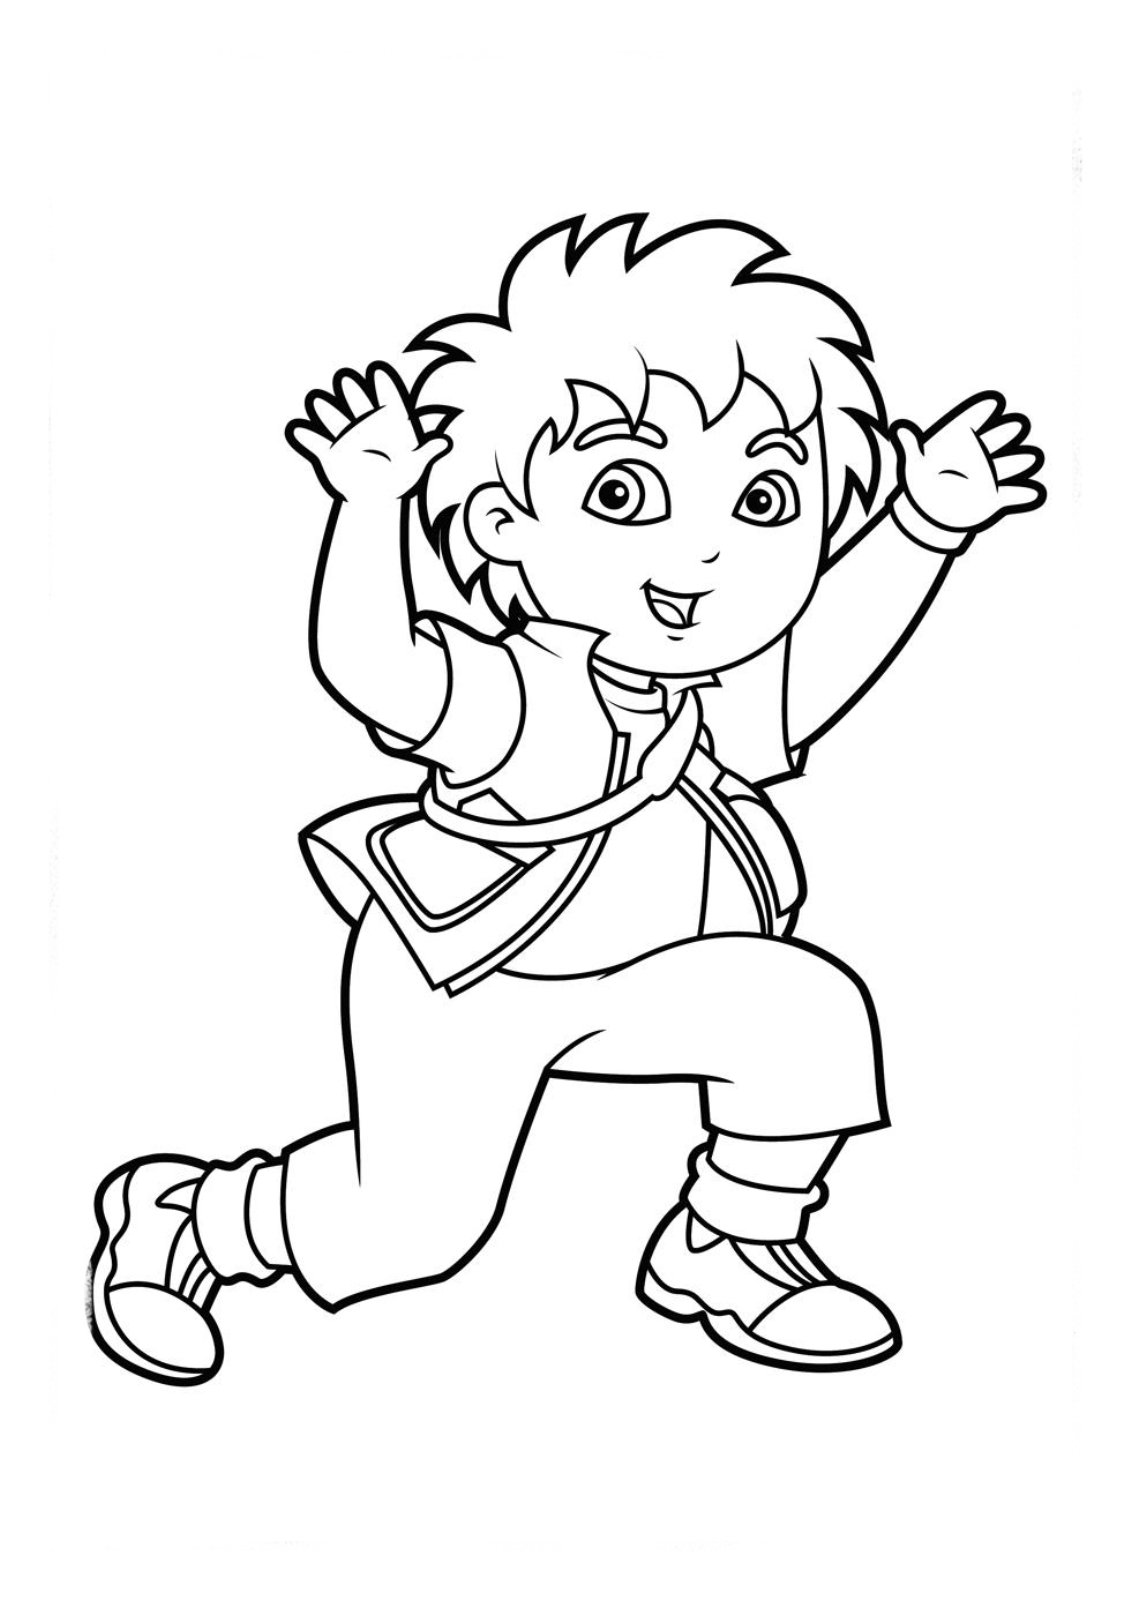 Printable Diego Coloring Pages And